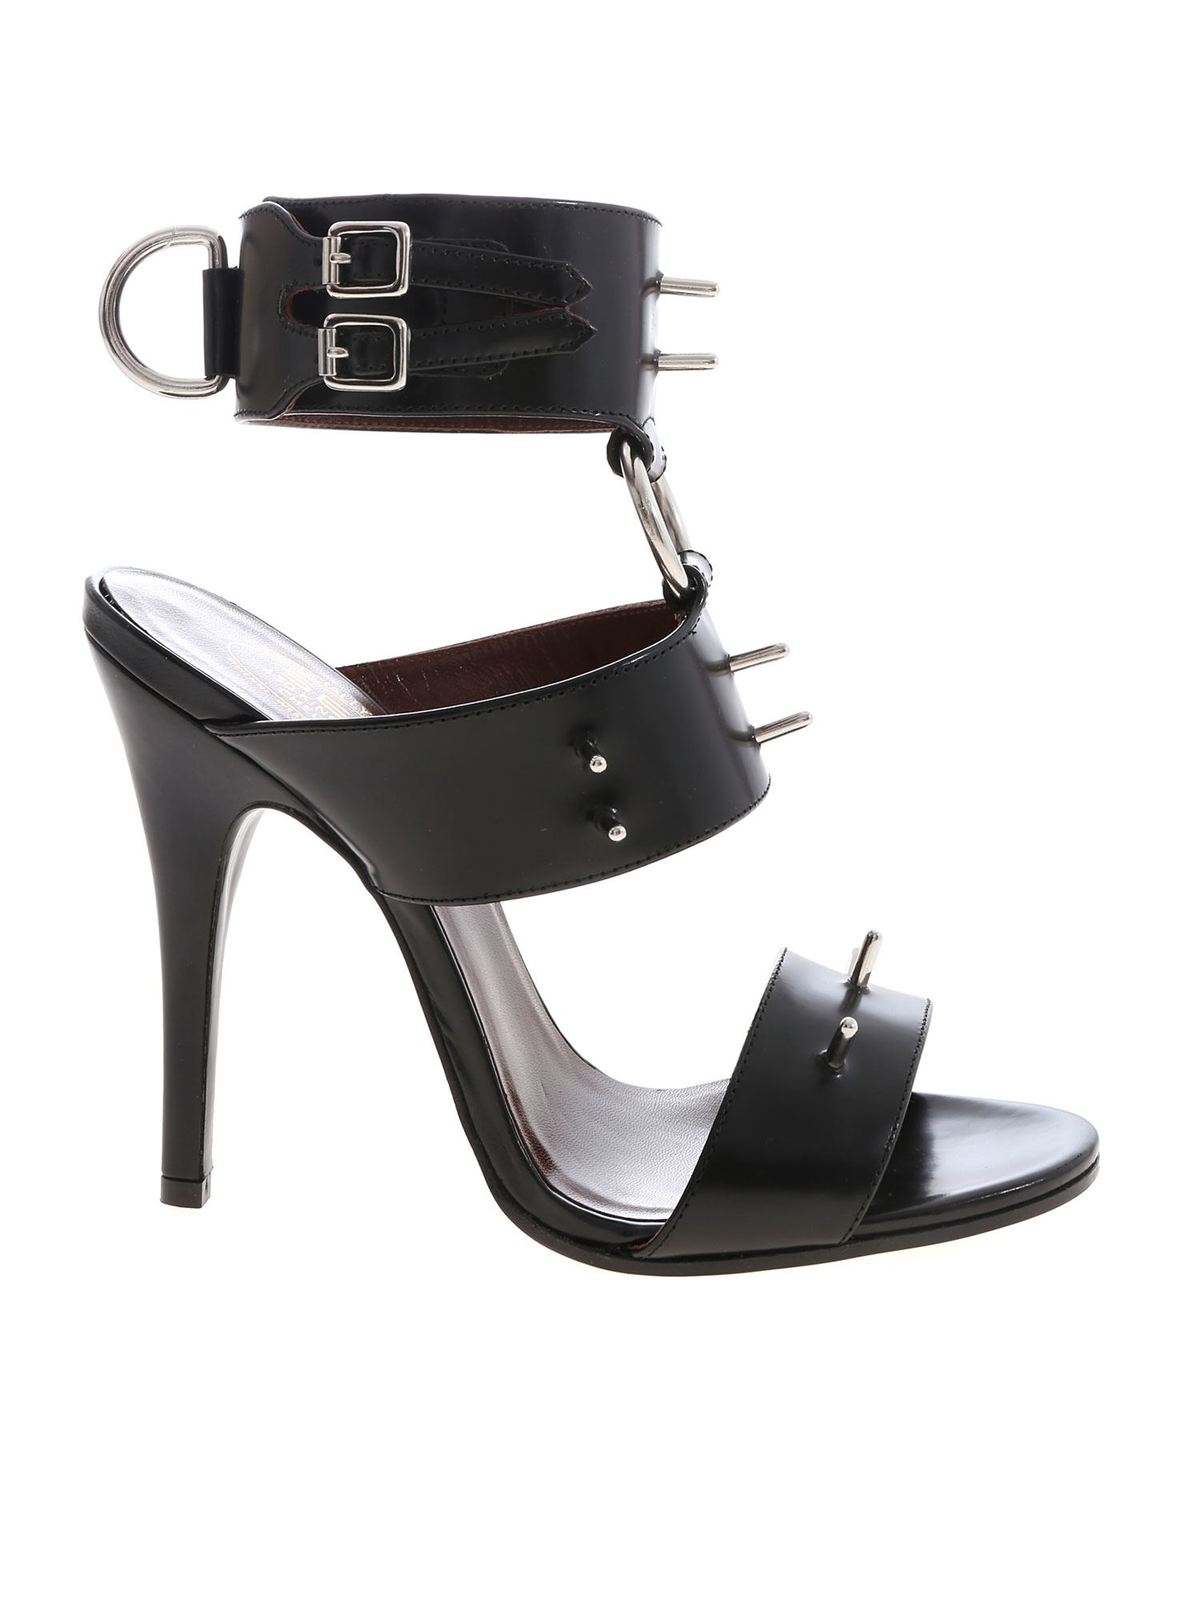 Vivienne Westwood SEX SANDALS IN BLACK